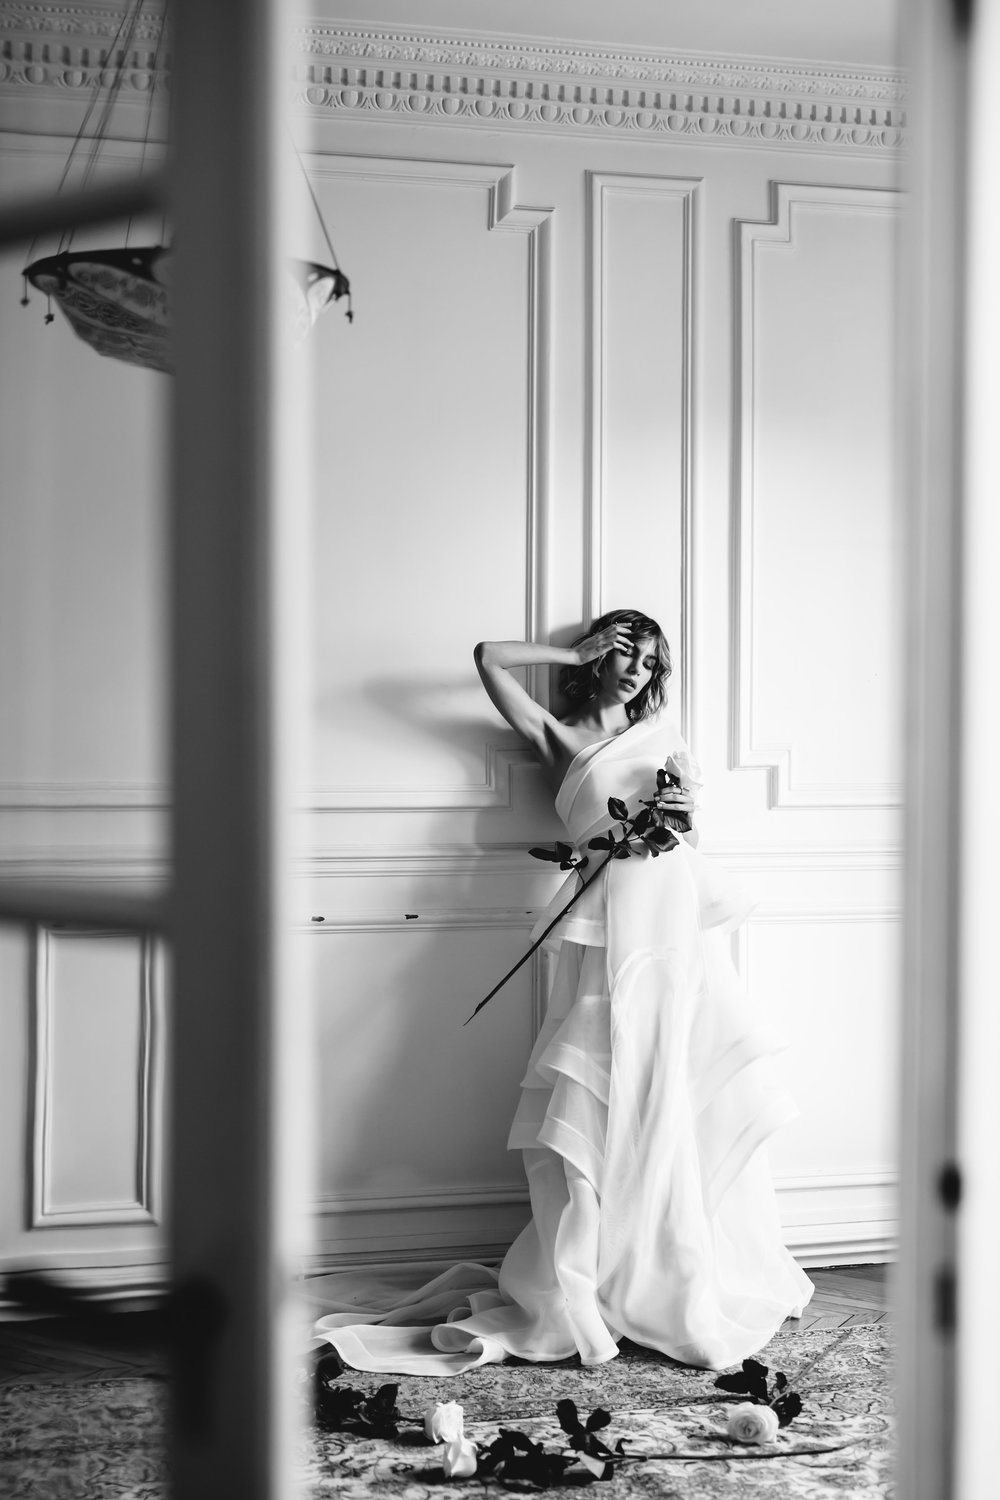 georgia-young-couture-bride-wedding-dressilookbook-paris-ritual-bride-27